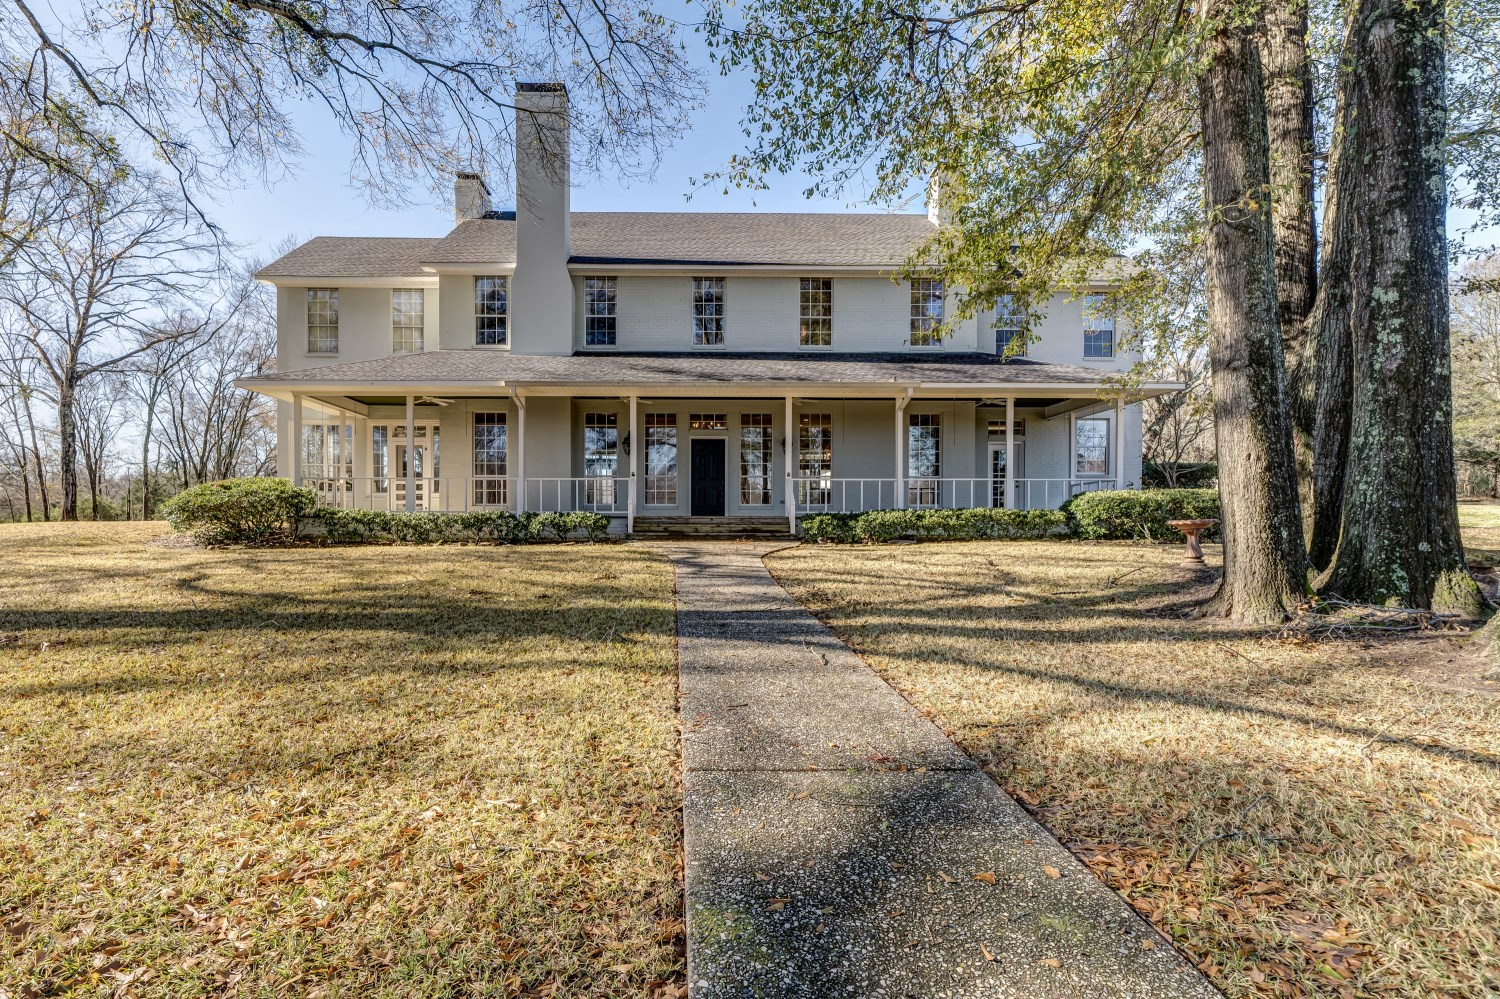 Hilltop Country Home for Sale in East Texas Near Flint Texas